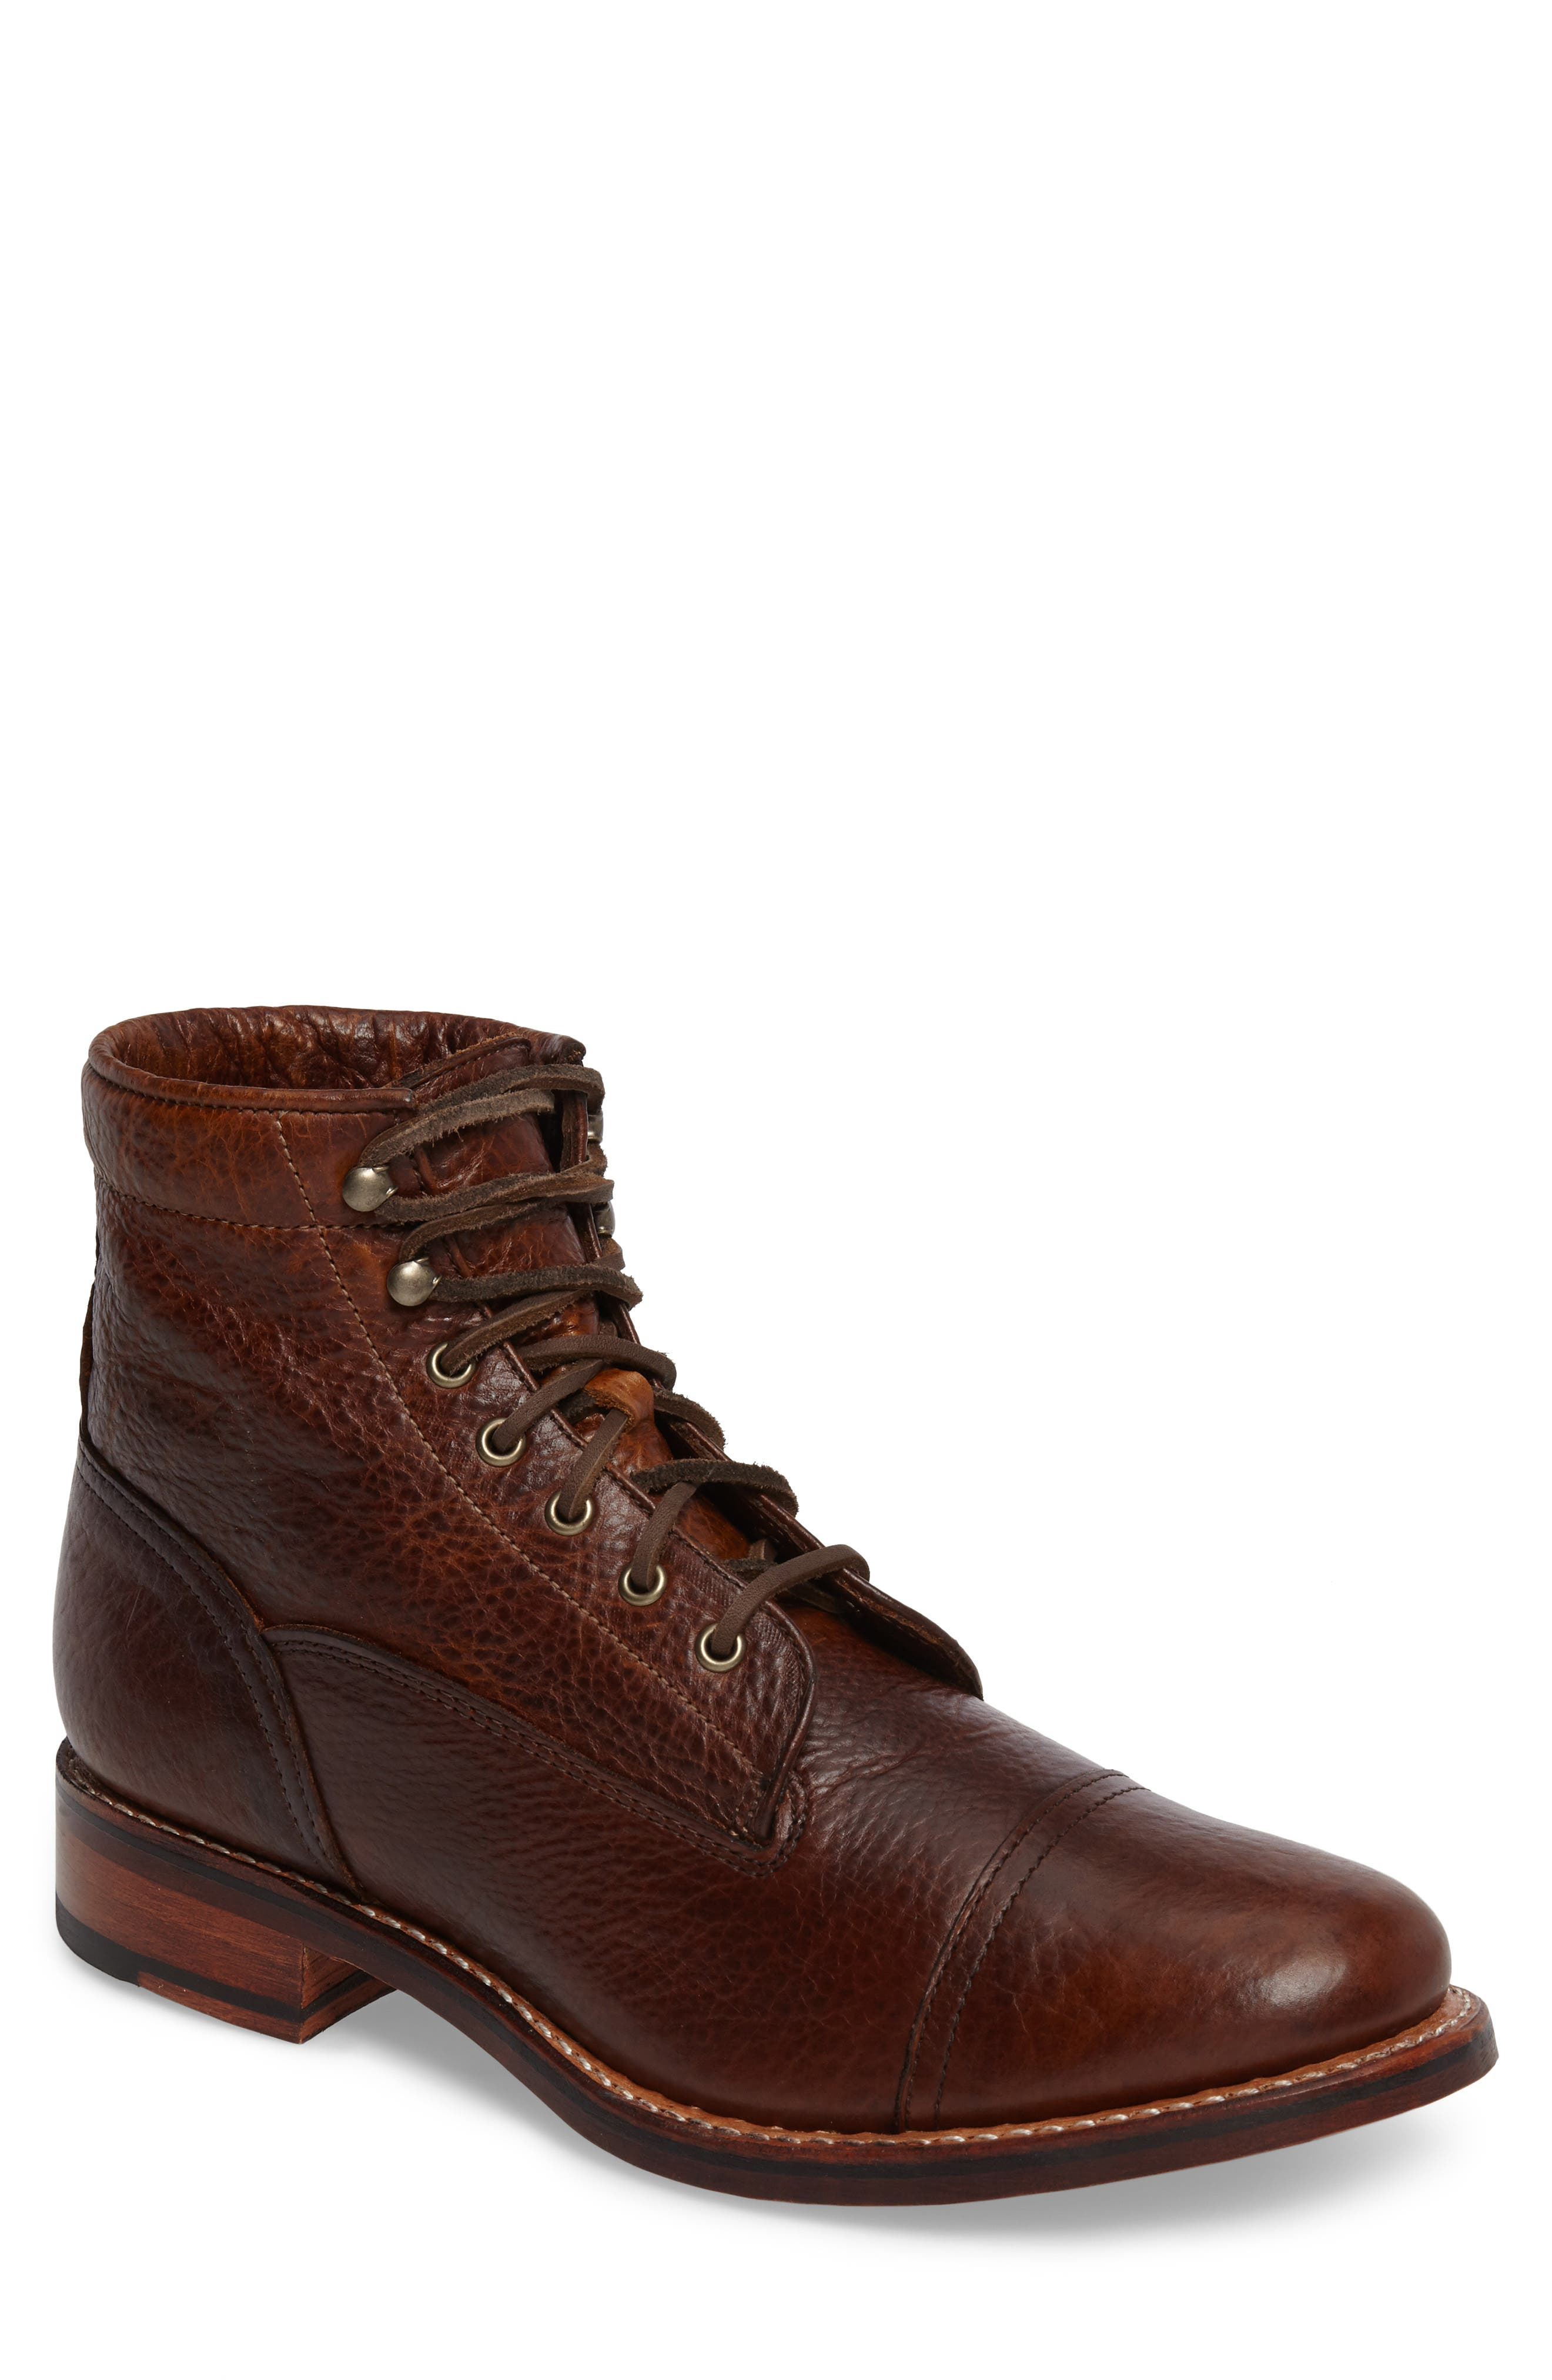 Ariat Highlands Cap Toe Boot,                             Main thumbnail 1, color,